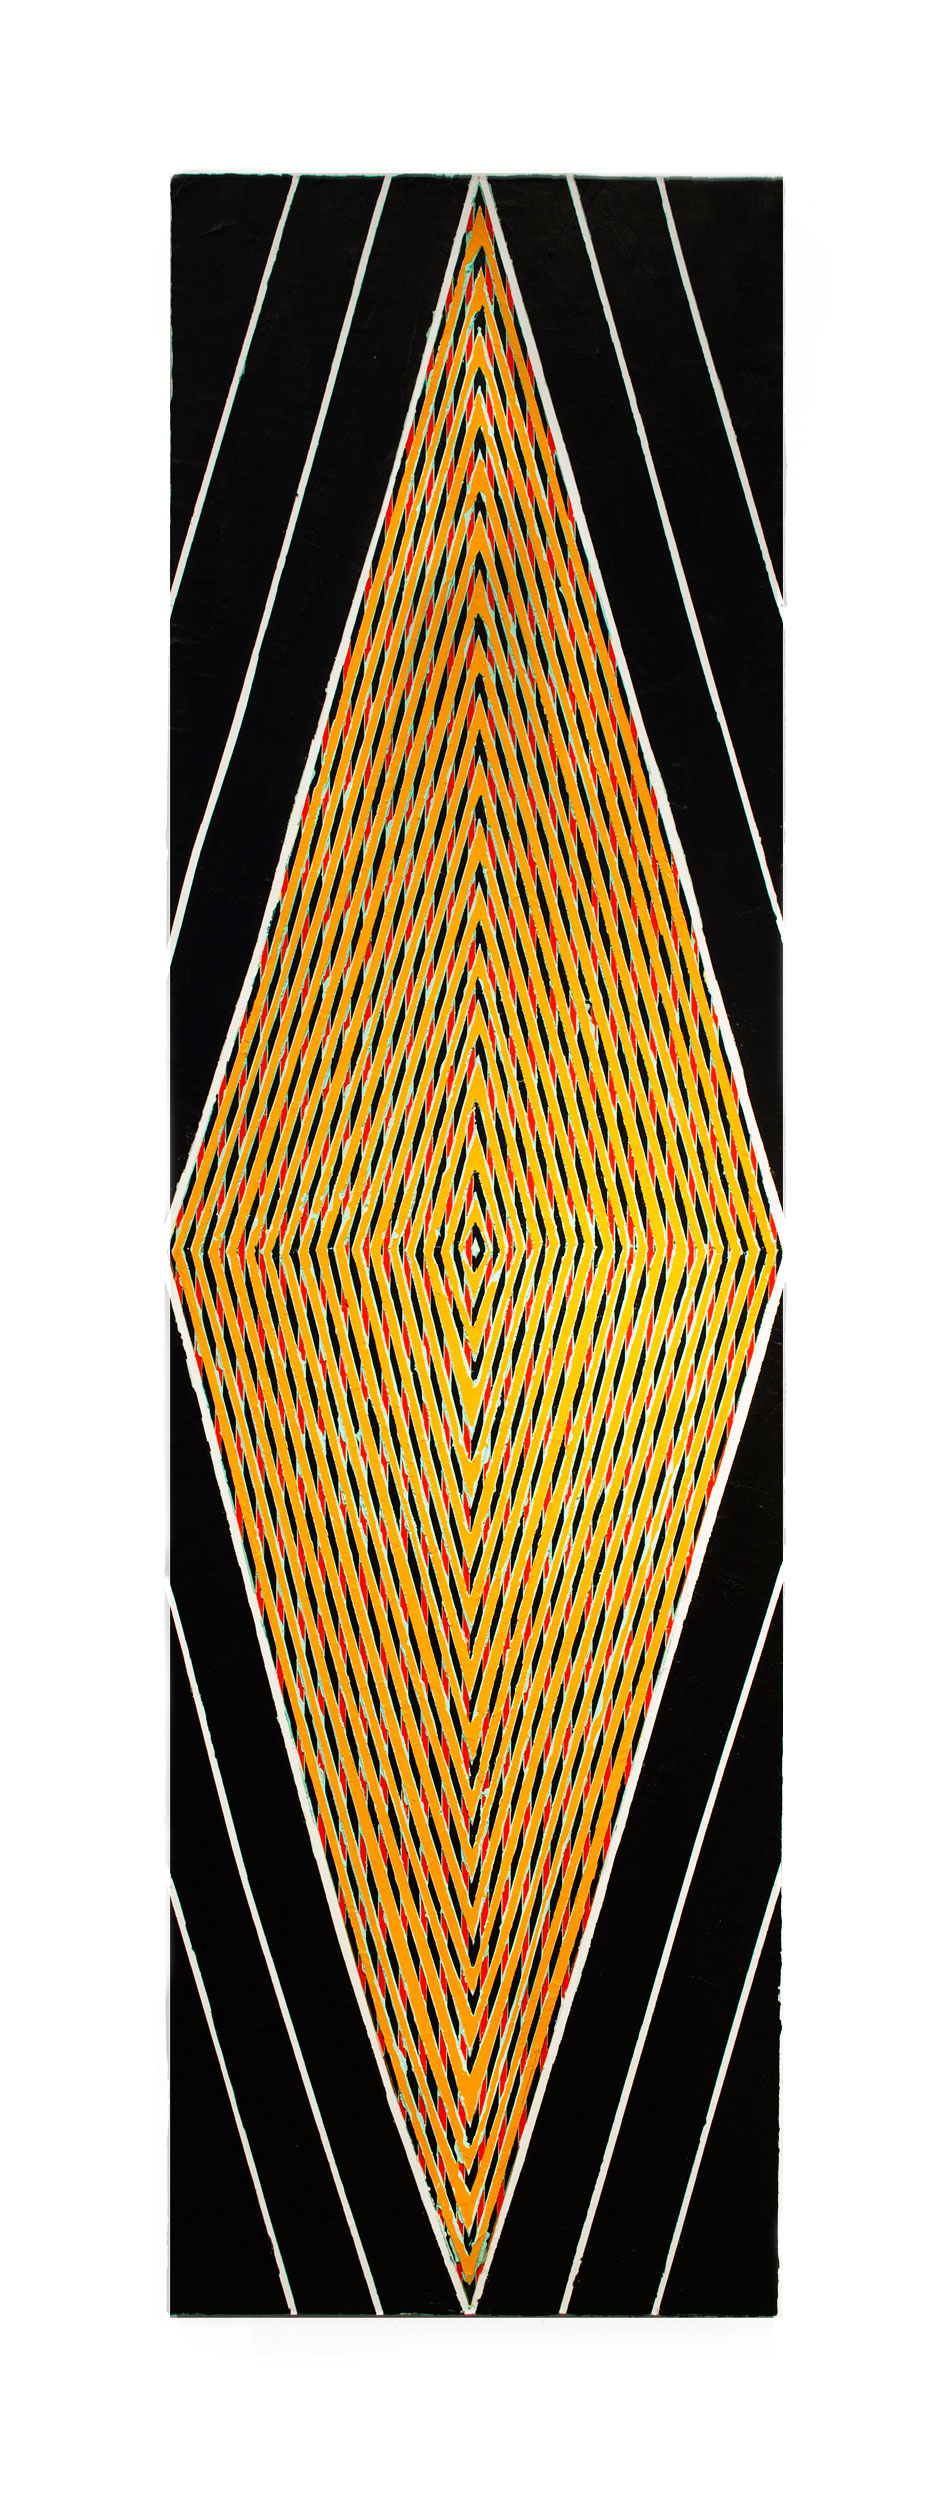 "2015   ""Tall Diamond w. Black & Orange (""Paris"")""    Acrylic on Canvas   84H x 24W"